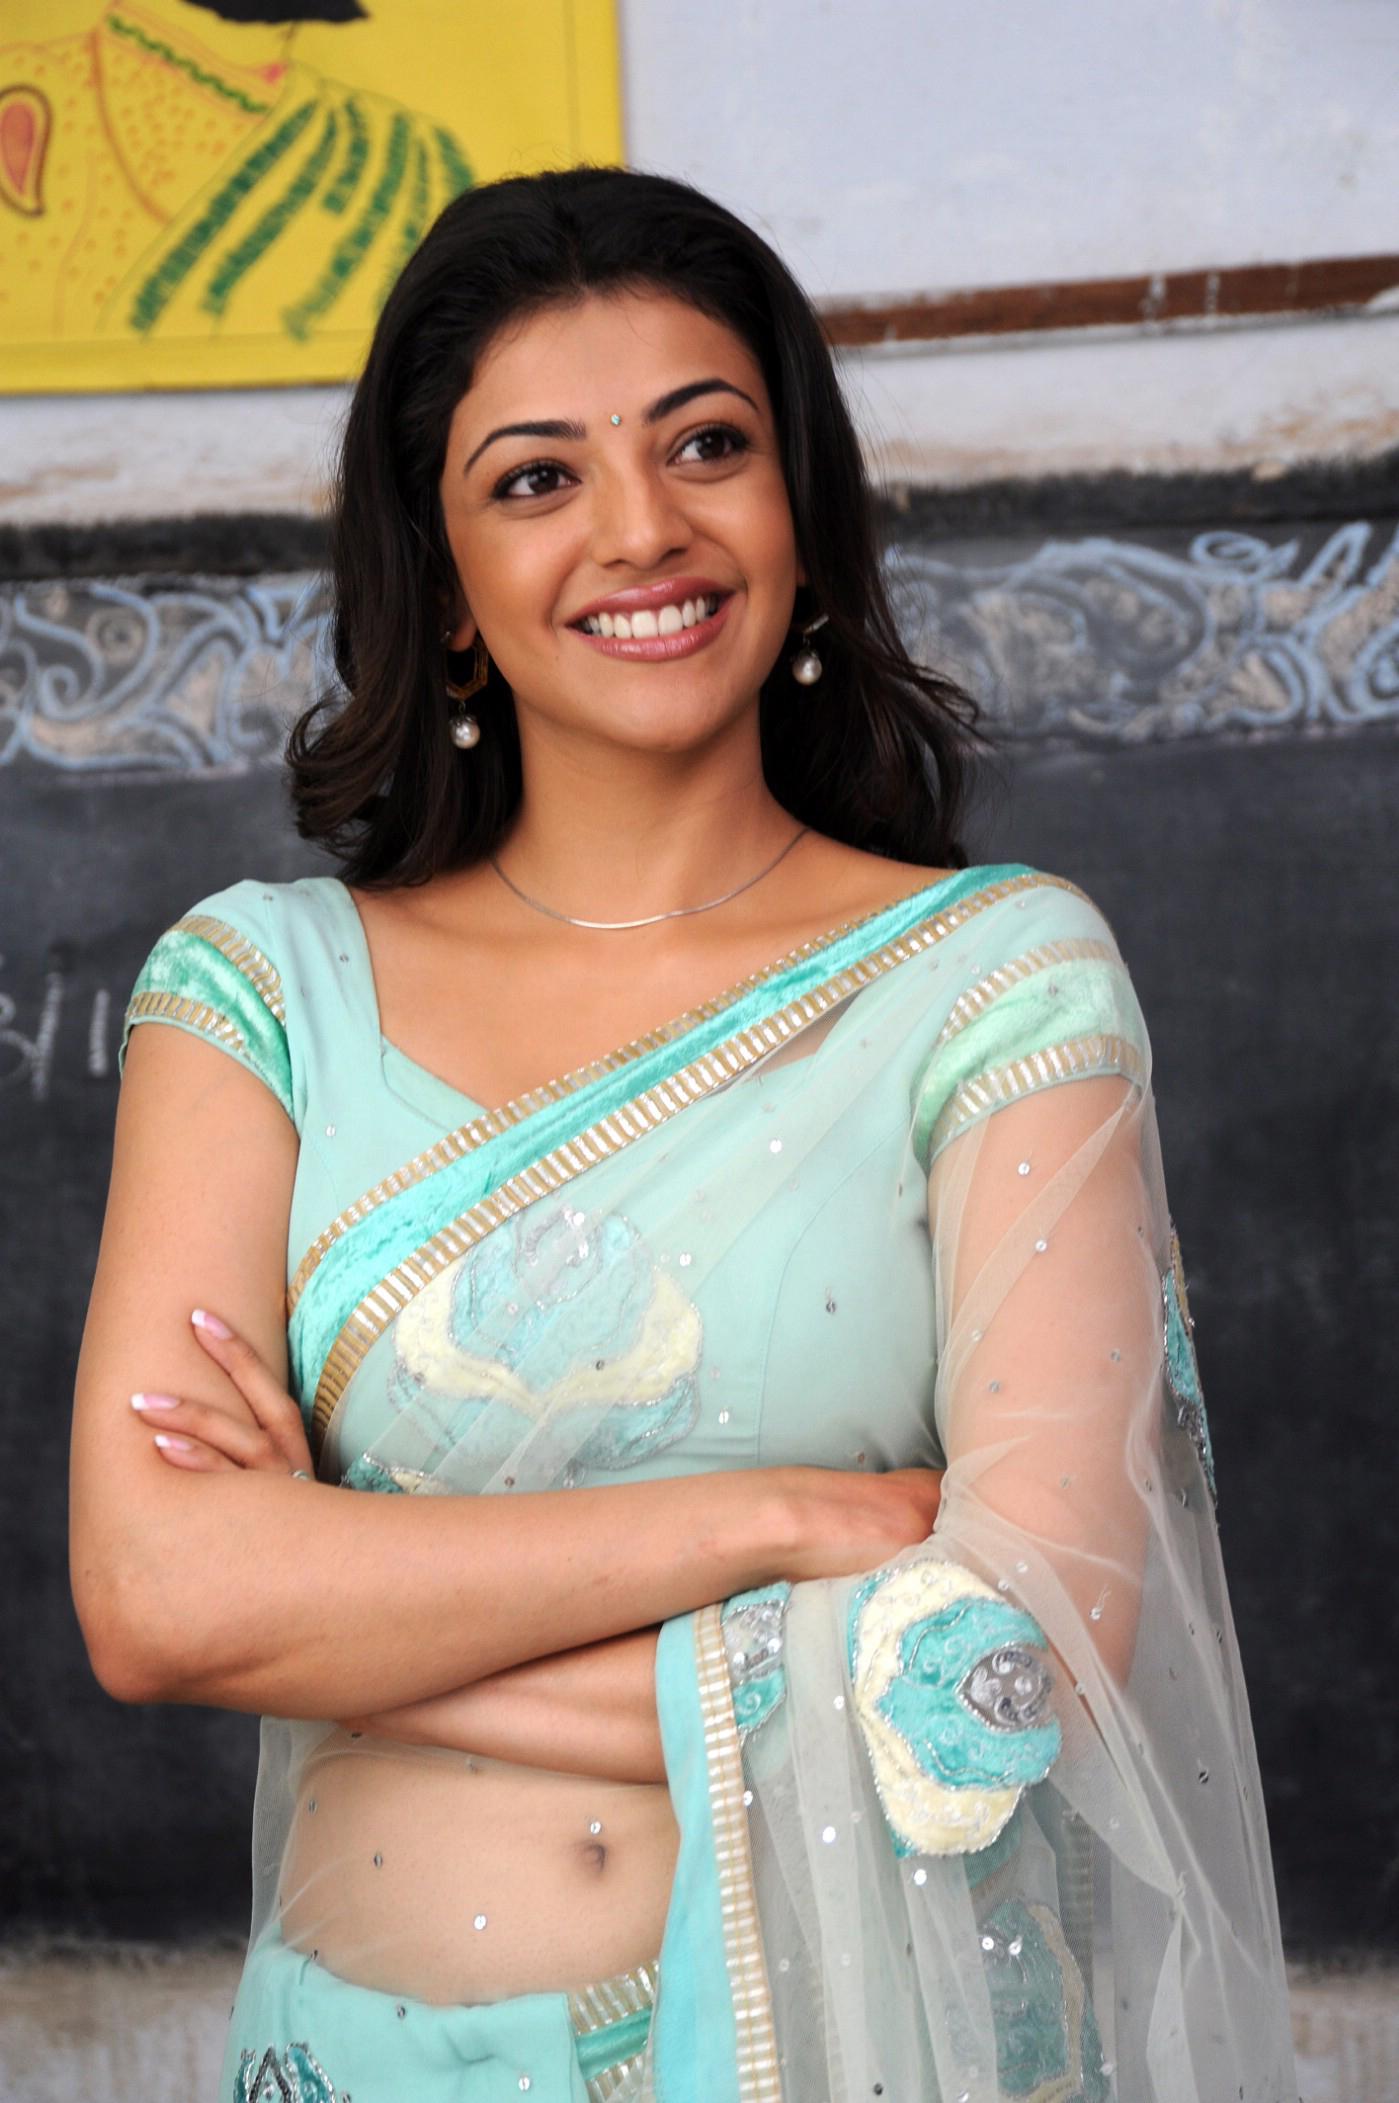 Rare Photos Of Kajal Aggarwal Showing Her Hot Curves In Saree